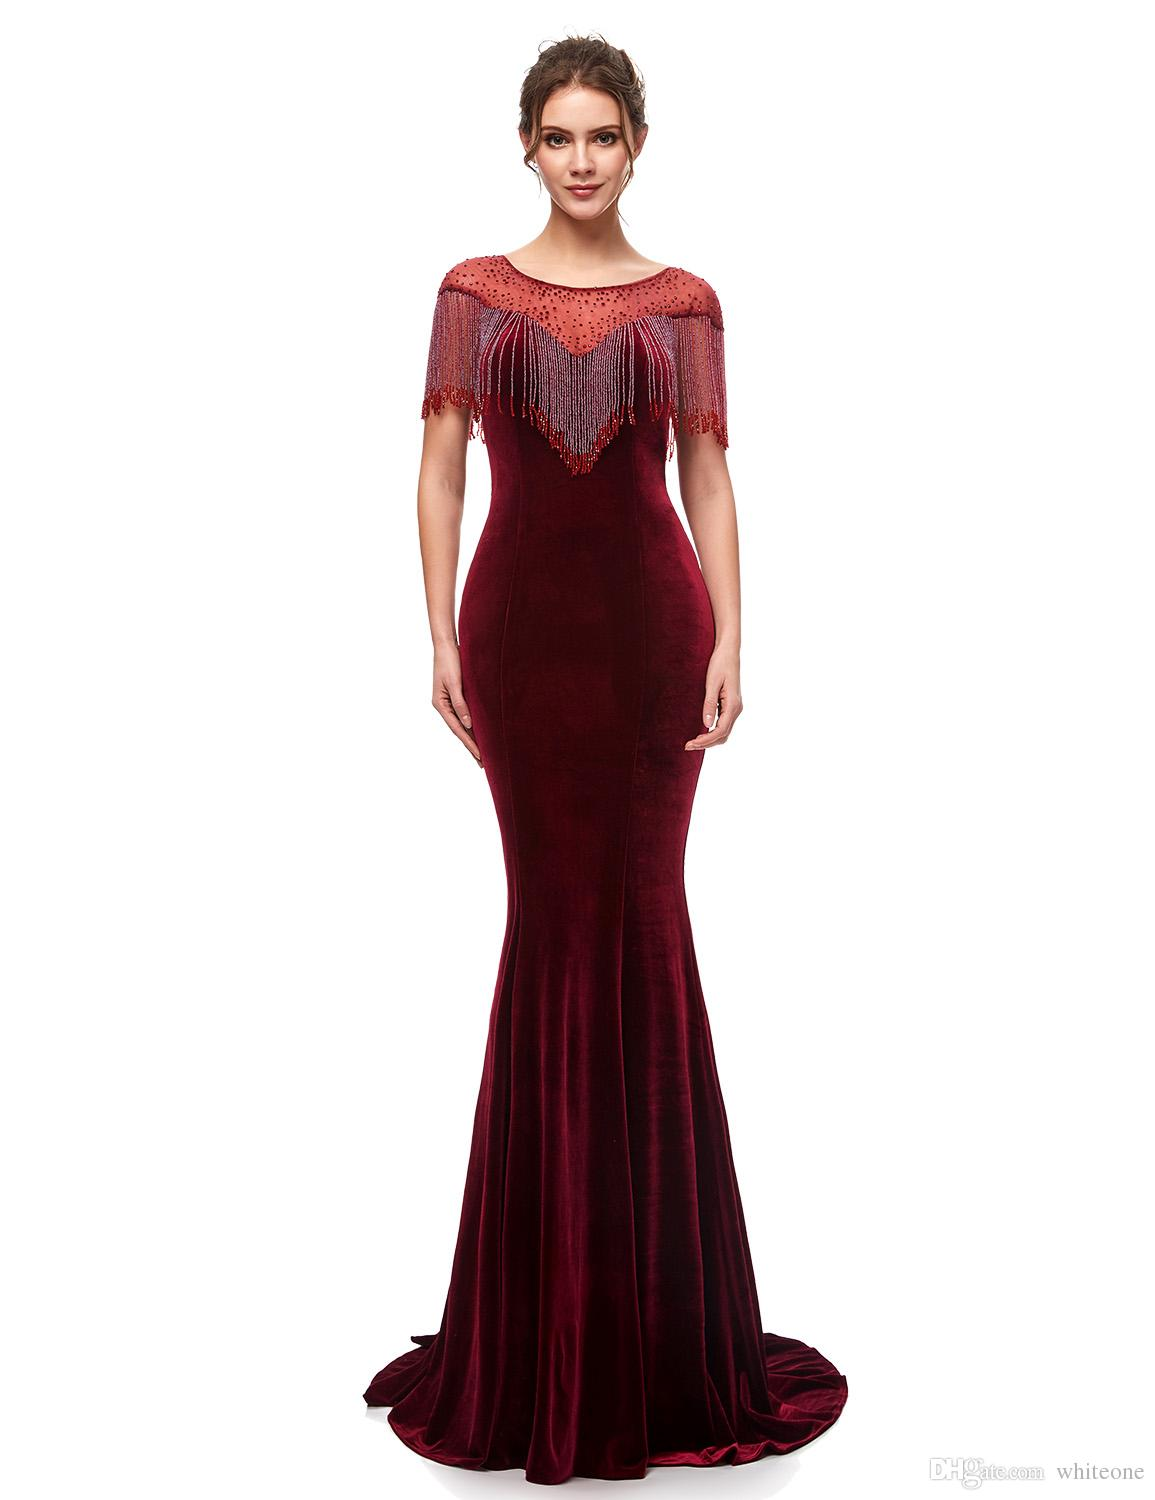 2019 New Stylish Evening Dresses Elegant Velvet With Tassel Formal Long  Evening Gowns Floor Length Pron Party Gowns Robe De Soiree 5400 Evening  Dresses Maxi ... 5fbe3cf6f9c5